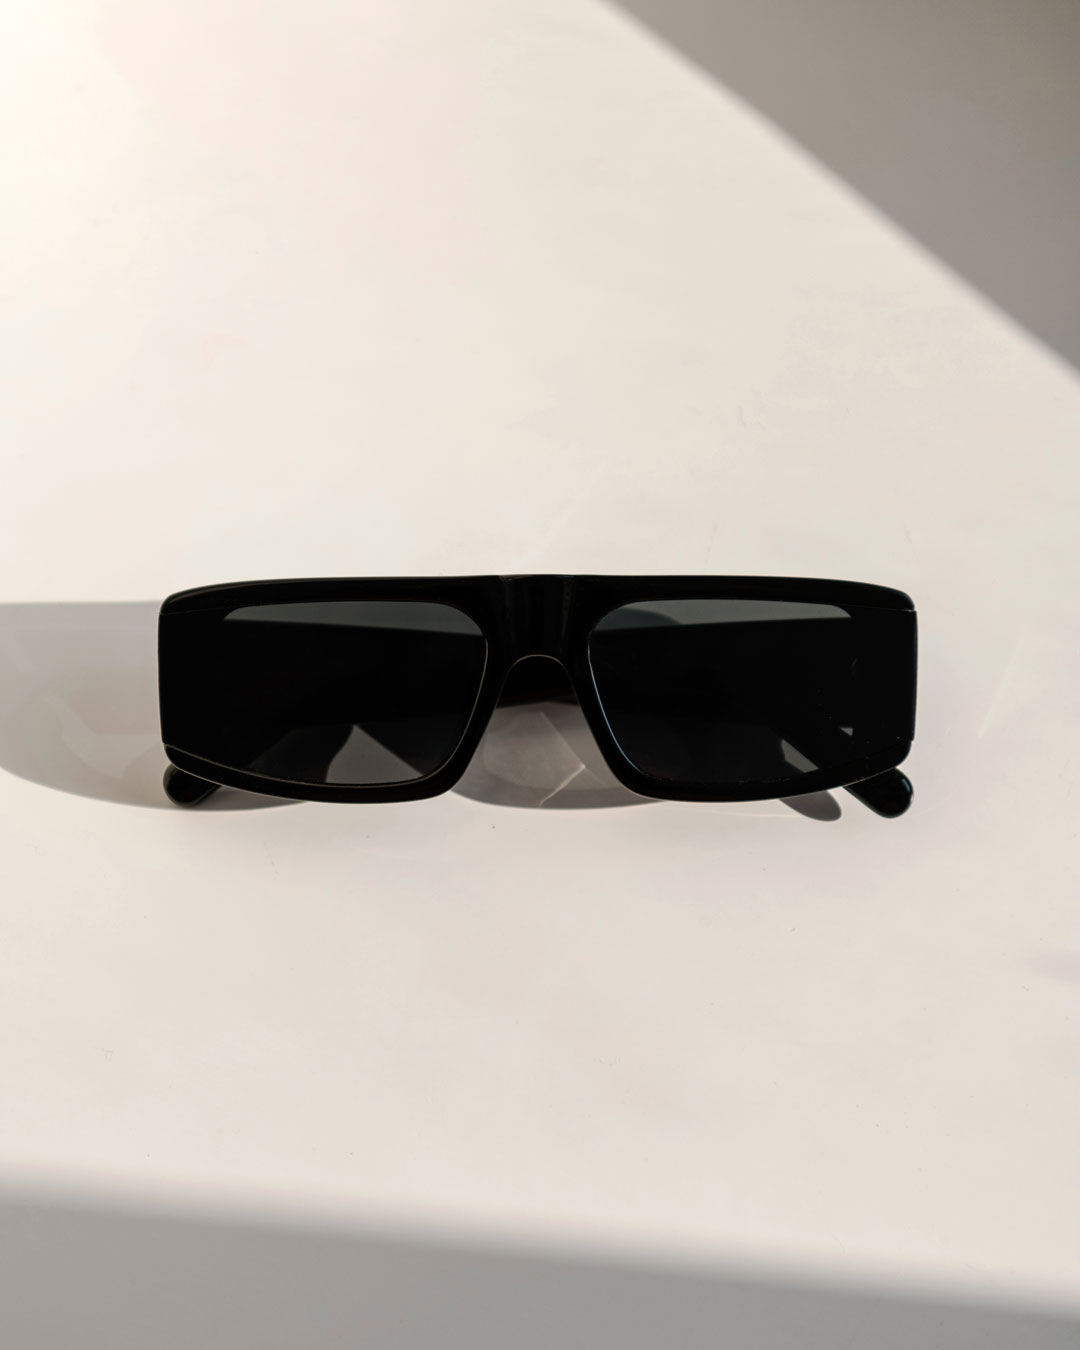 Rectangle black sunglasses on a white table